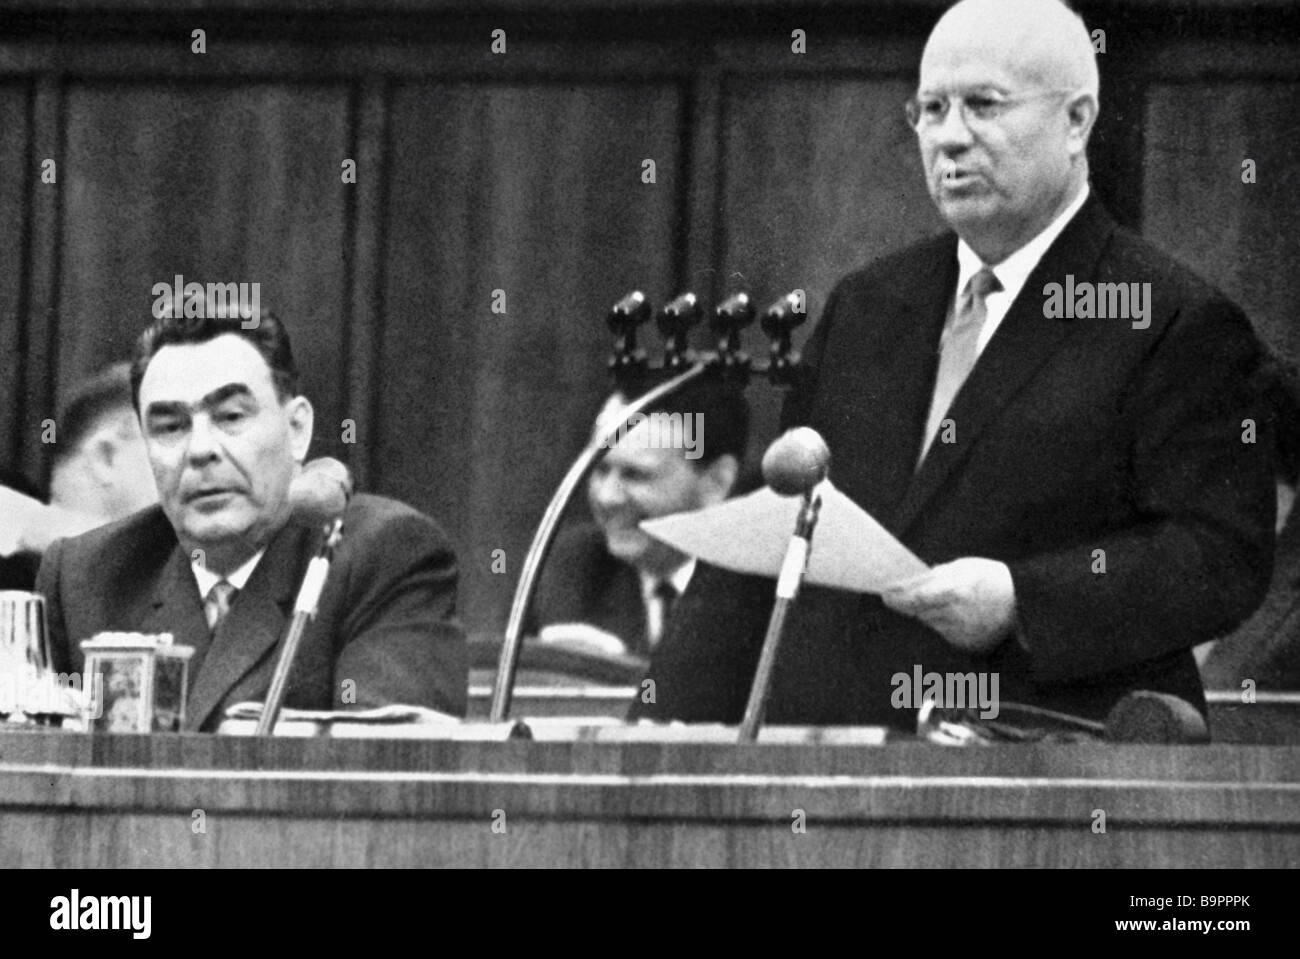 First secretary of the CPSU Central Committee Chairman of the USSR Council of Ministers Nikita Khrushchev right Stock Photo